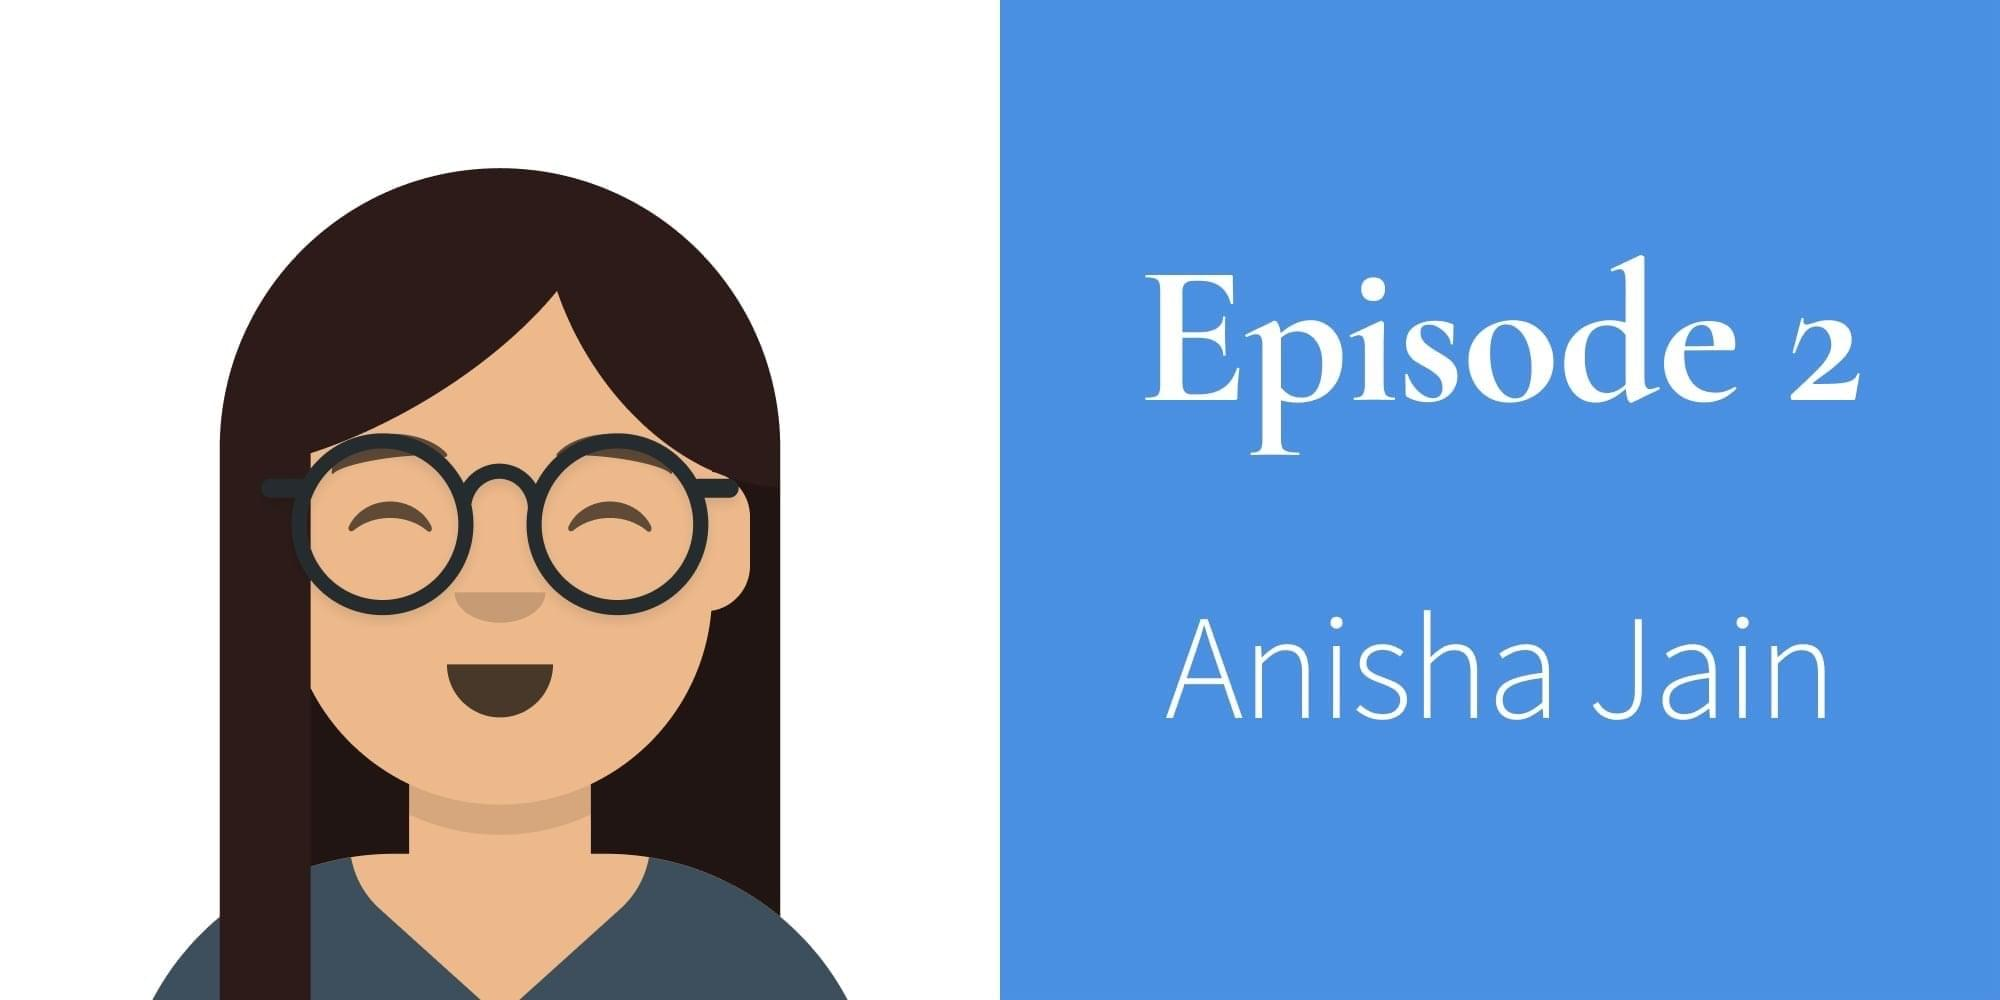 Episode 2. Anisha Jain